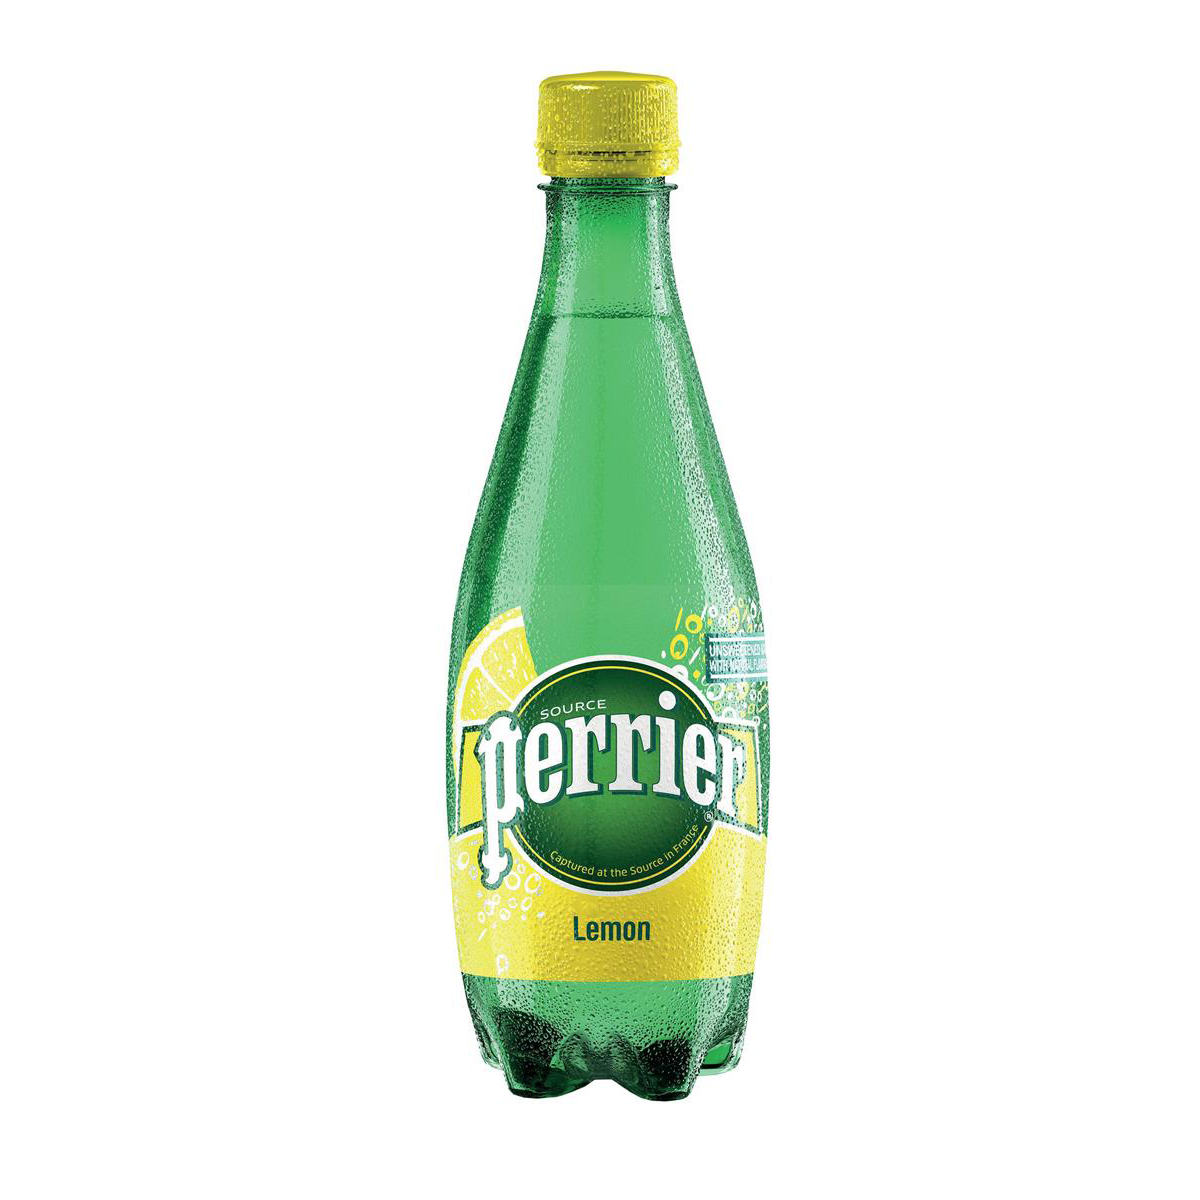 Perrier Sparkling Mineral Water Lemon Bottle Plastic 500ml Ref 12323020 [Pack 24]